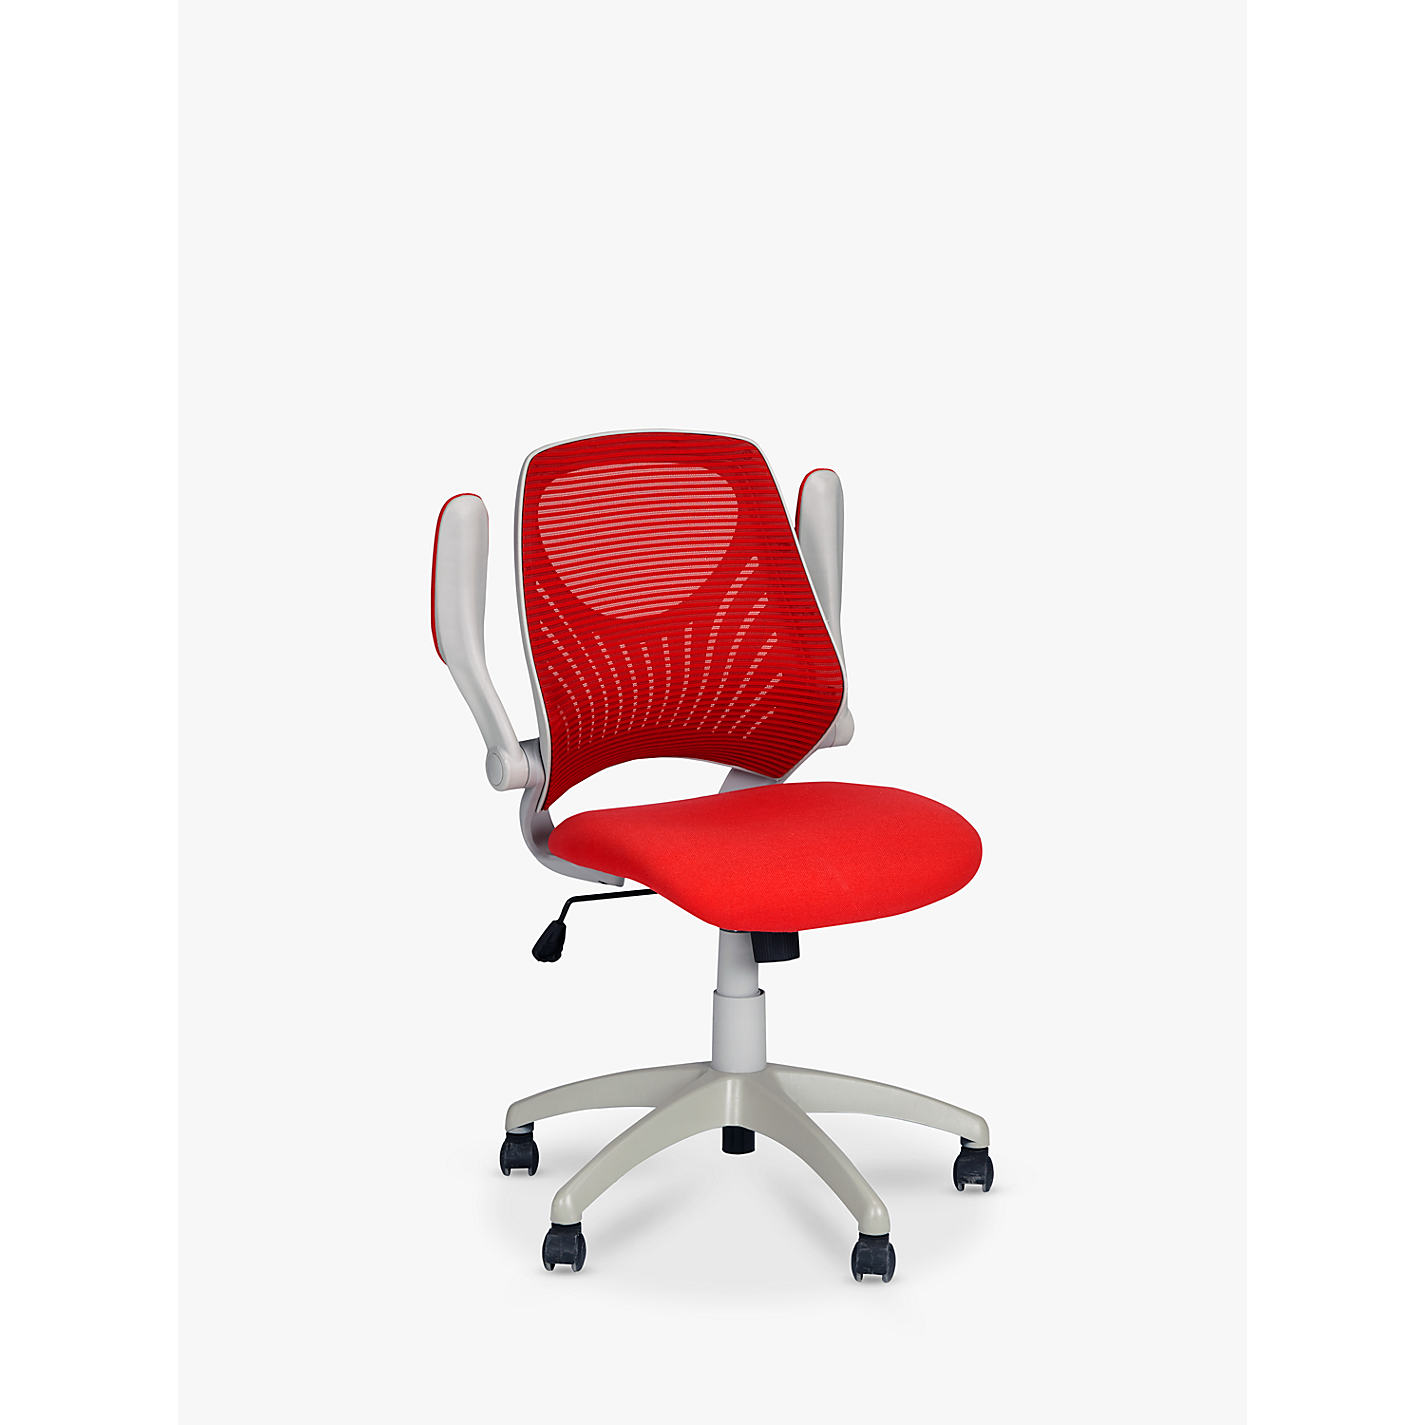 Buy House by John Lewis Hinton fice Chair